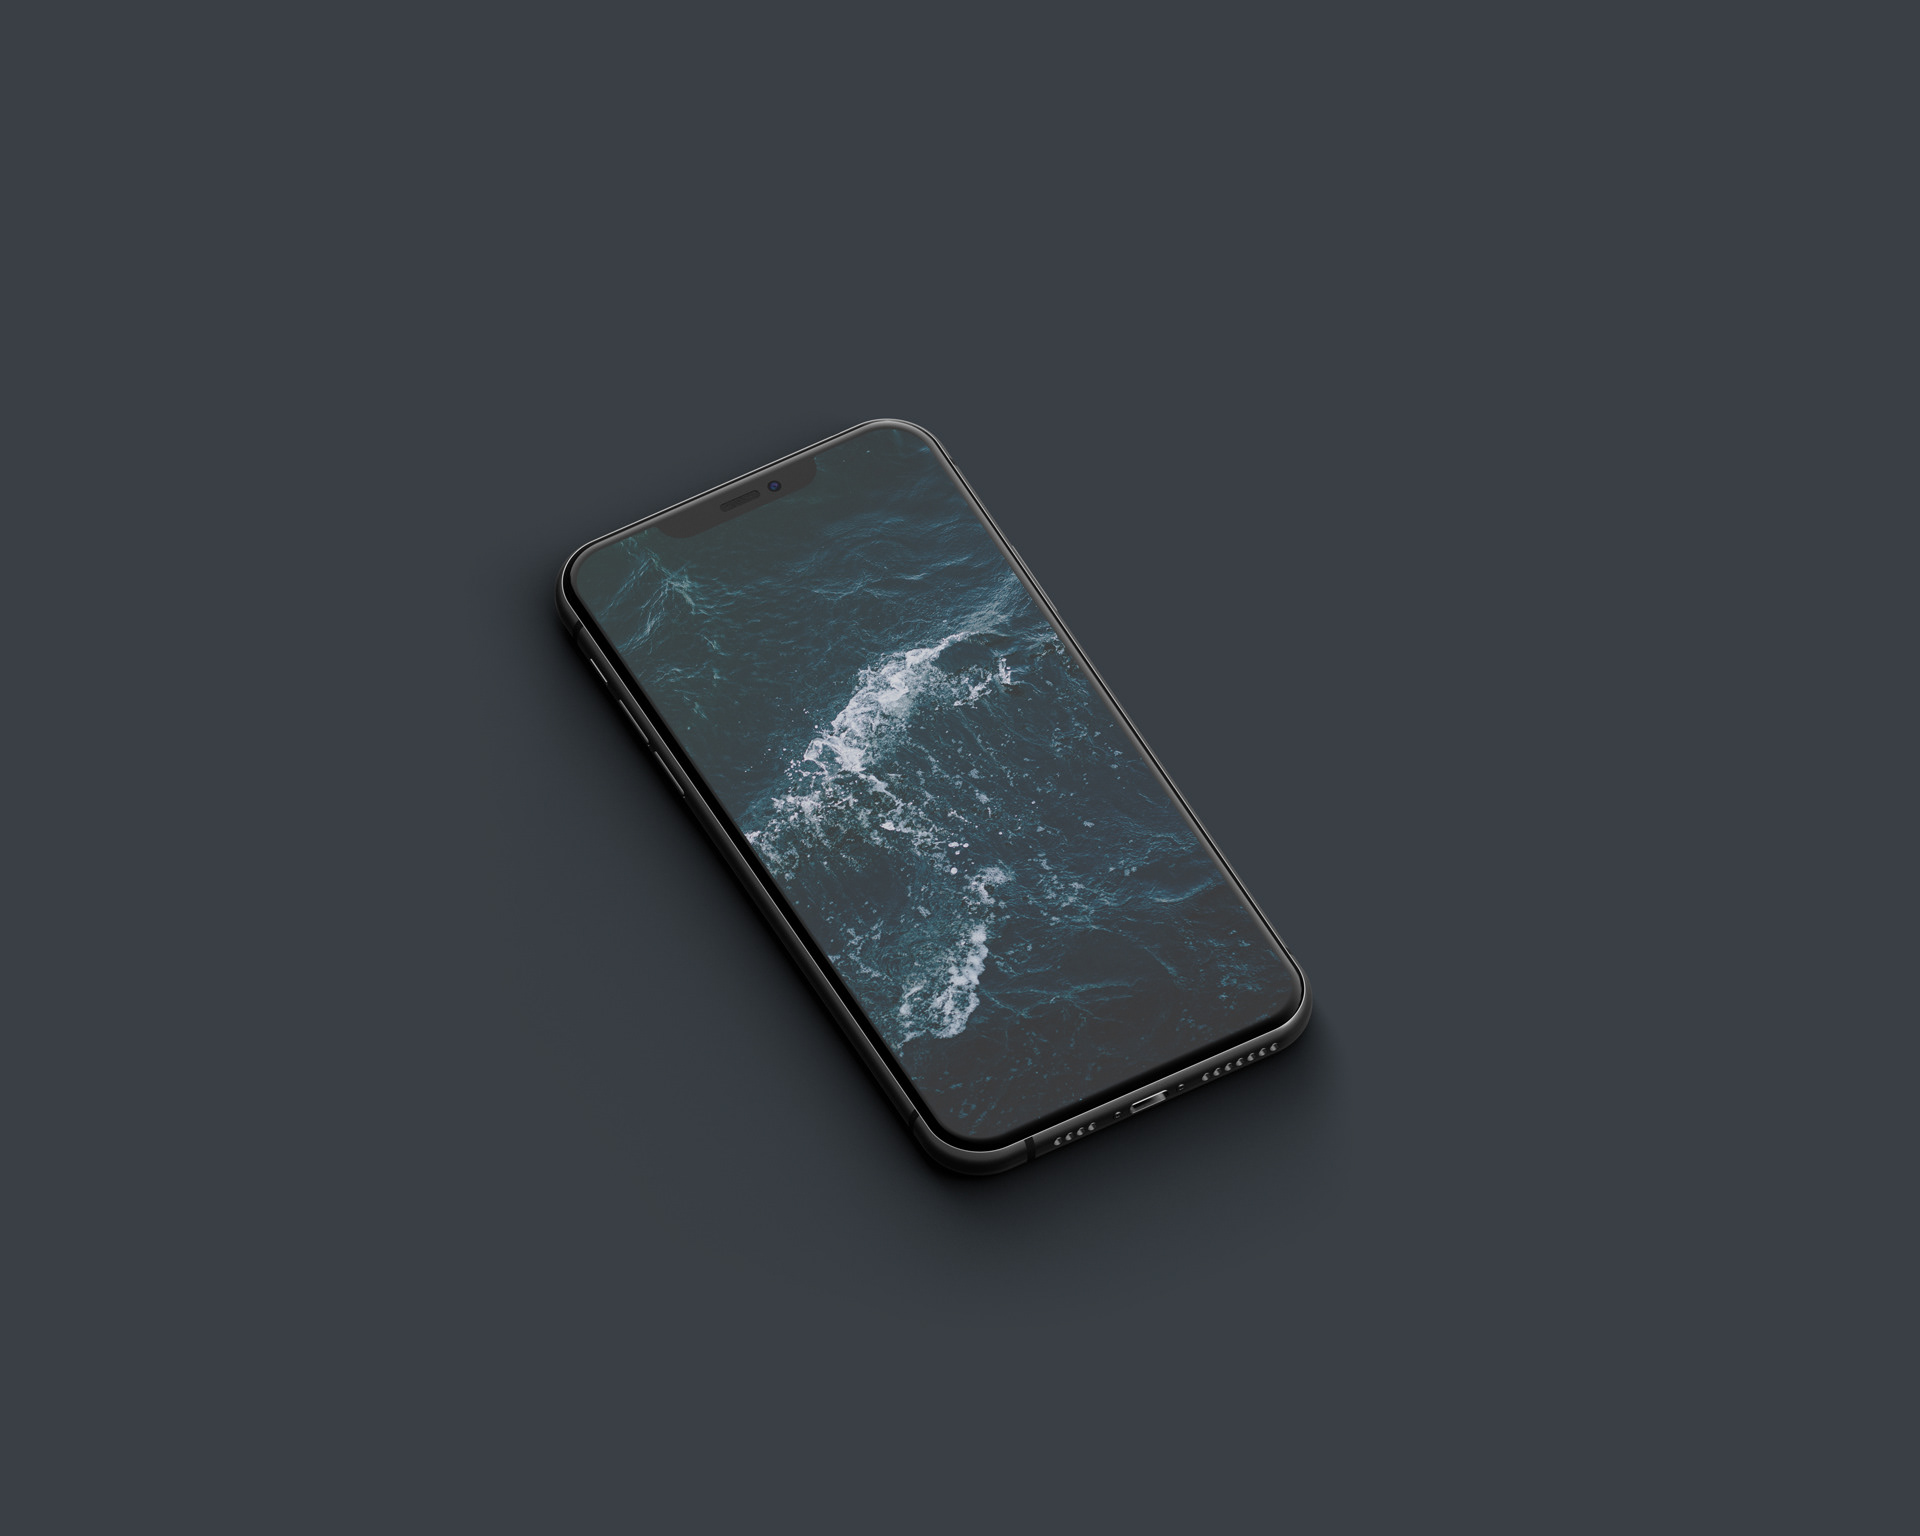 Free Black iPhone 11 Pro Mockup PSD